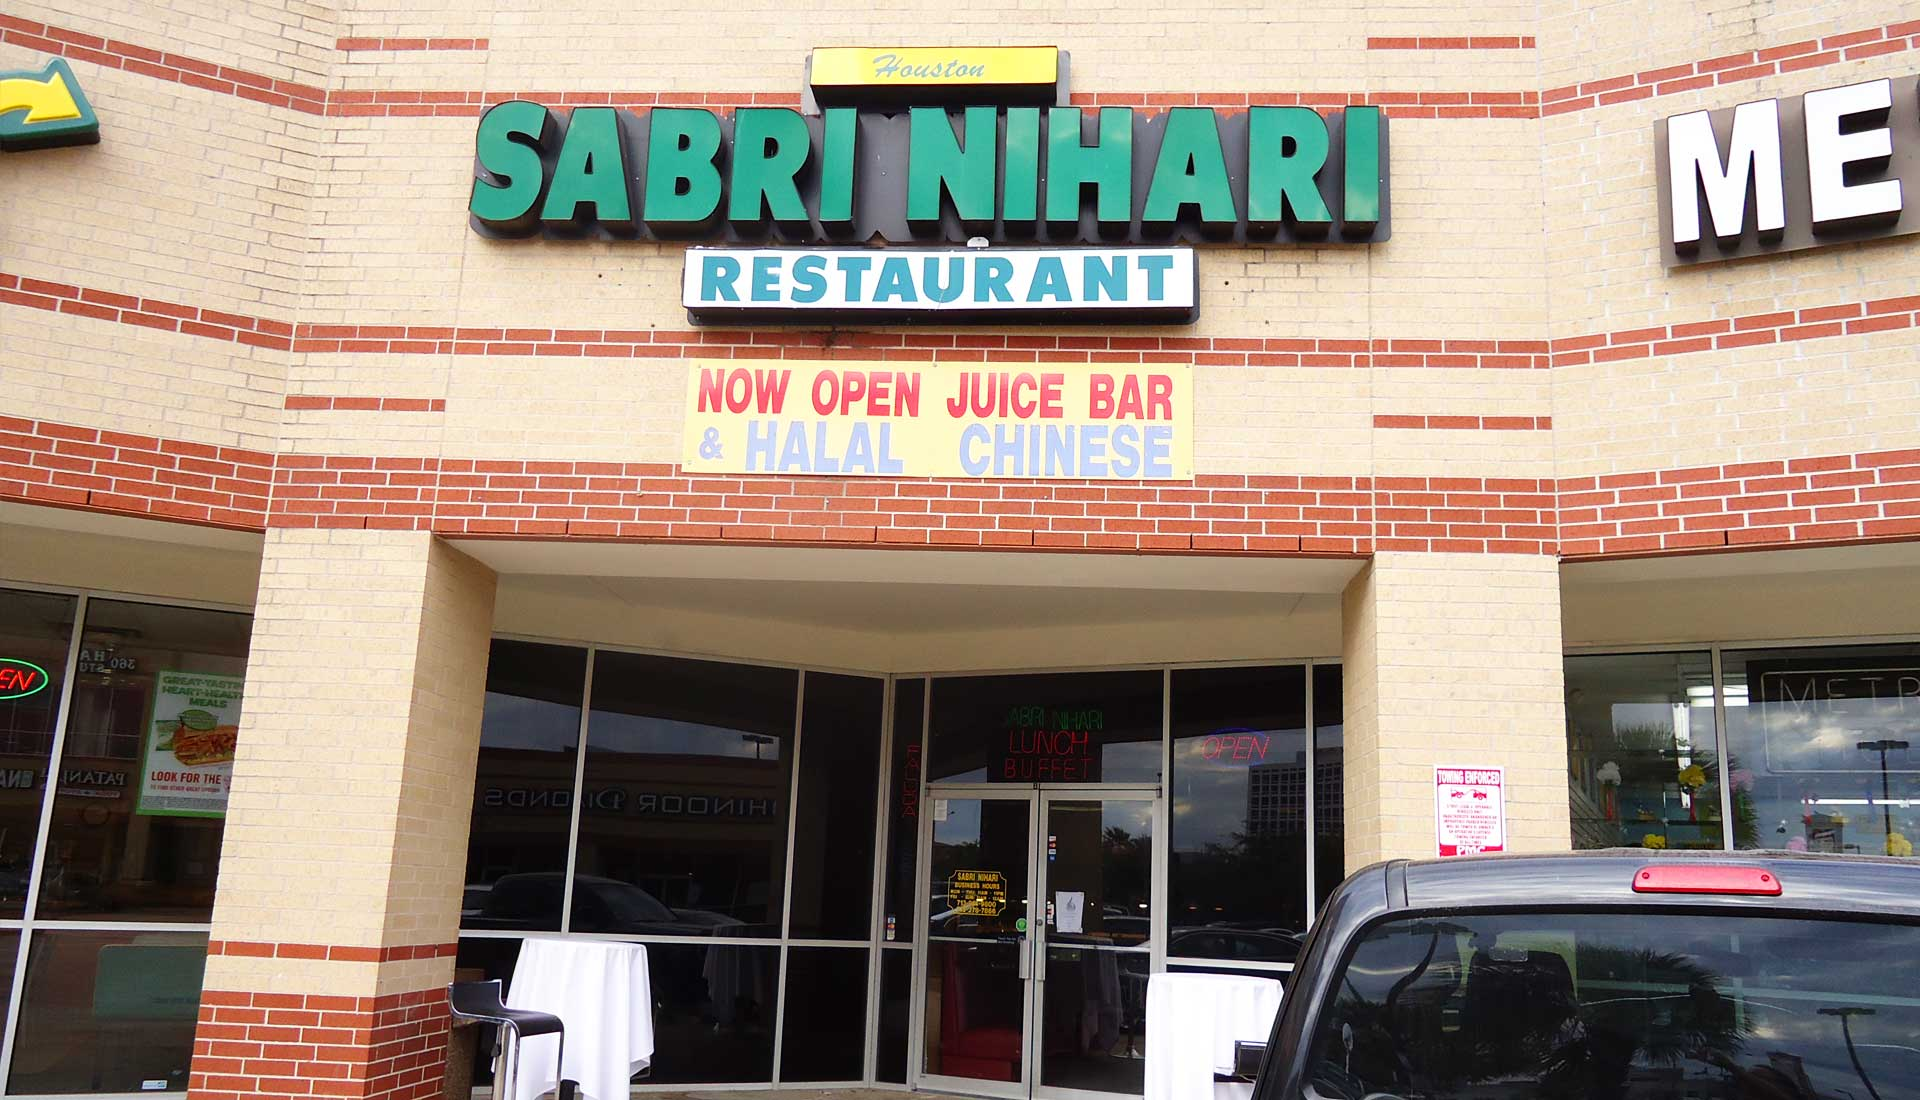 Sabri nihari for Abhiruchi indian cuisine houston tx